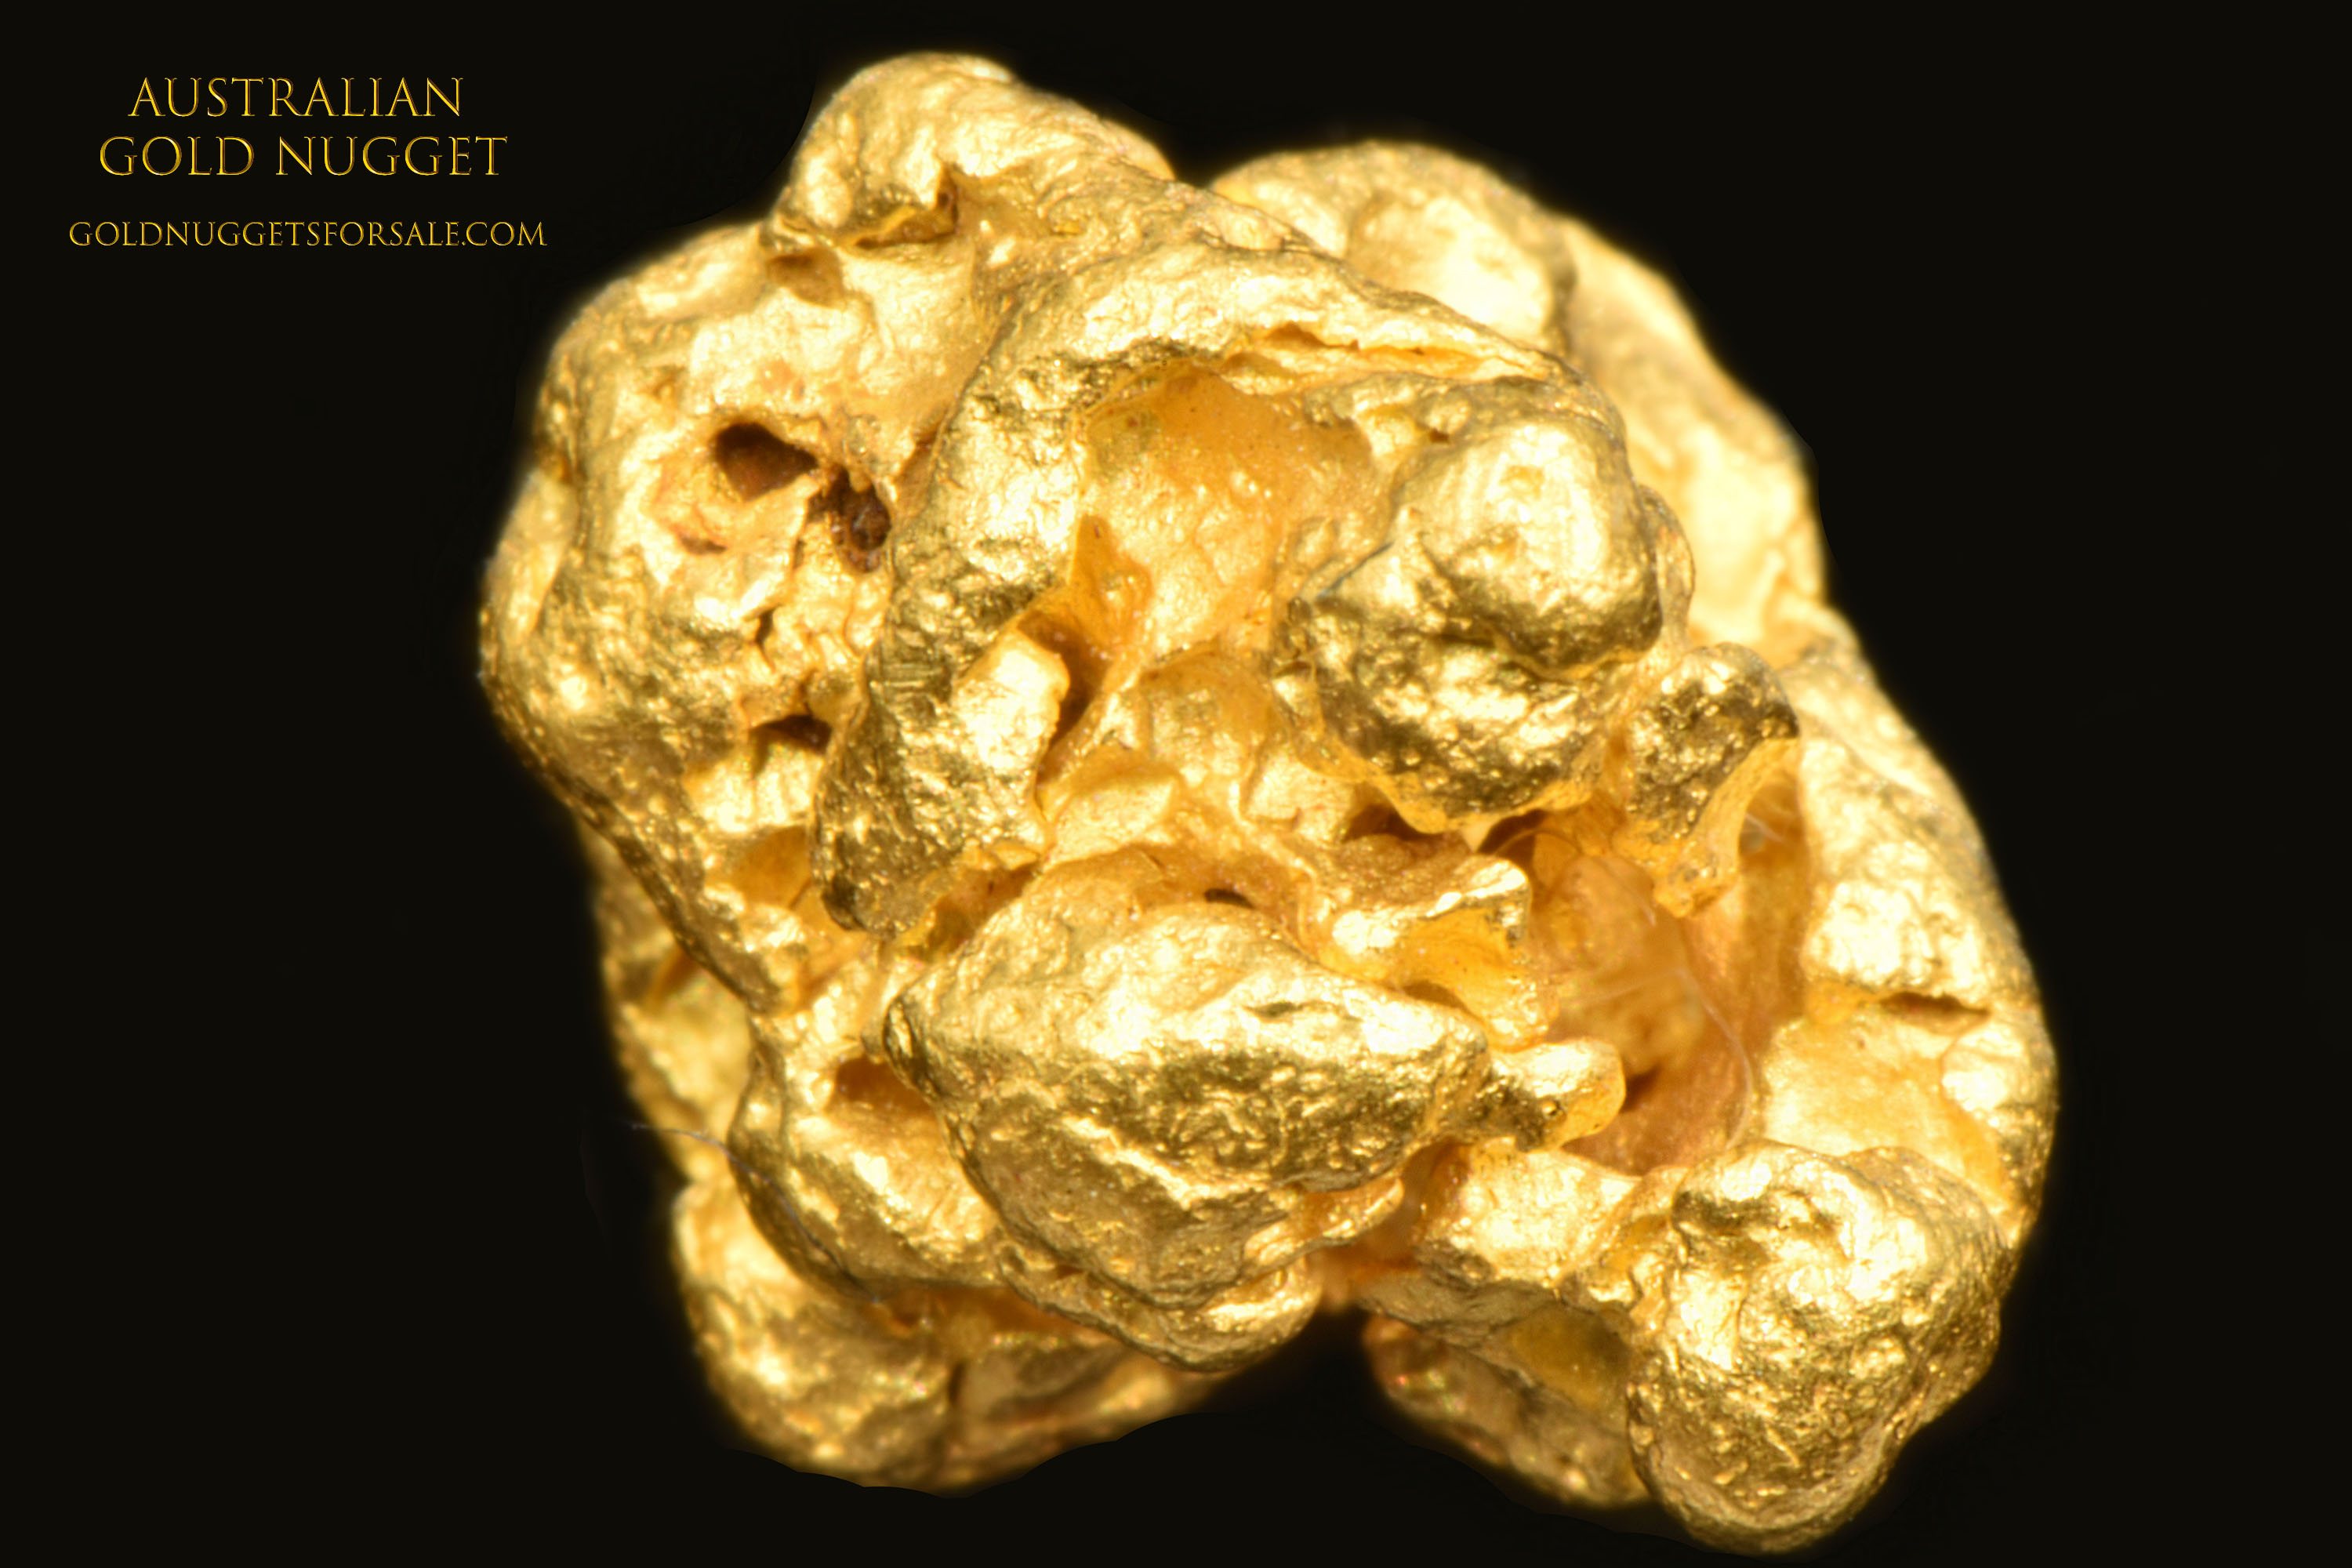 Extra Plump and Very Detailed - Australian Gold Nugget